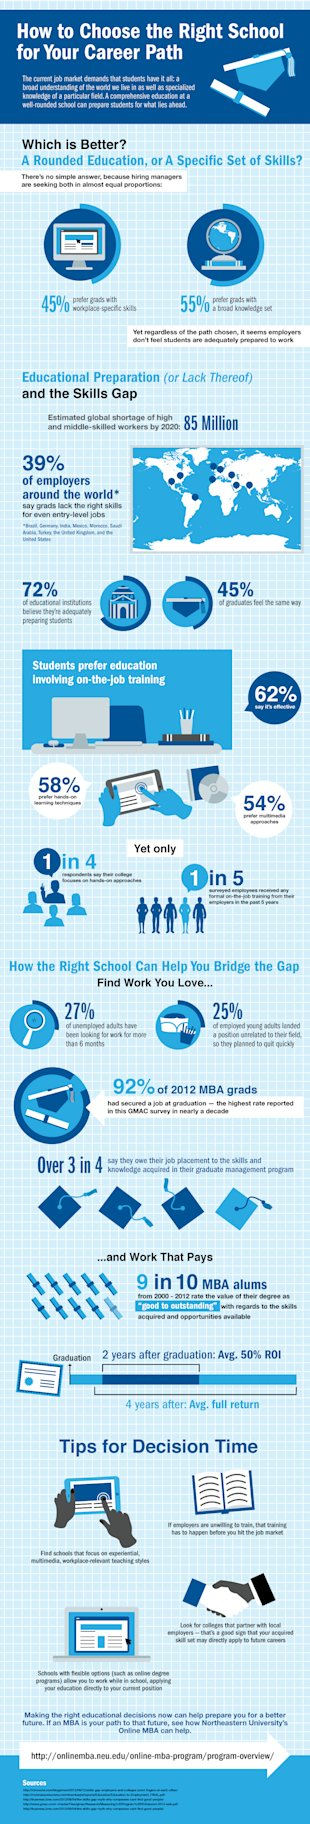 How To Choose the Right College For Your Career Path [Infographic] image RightSchool